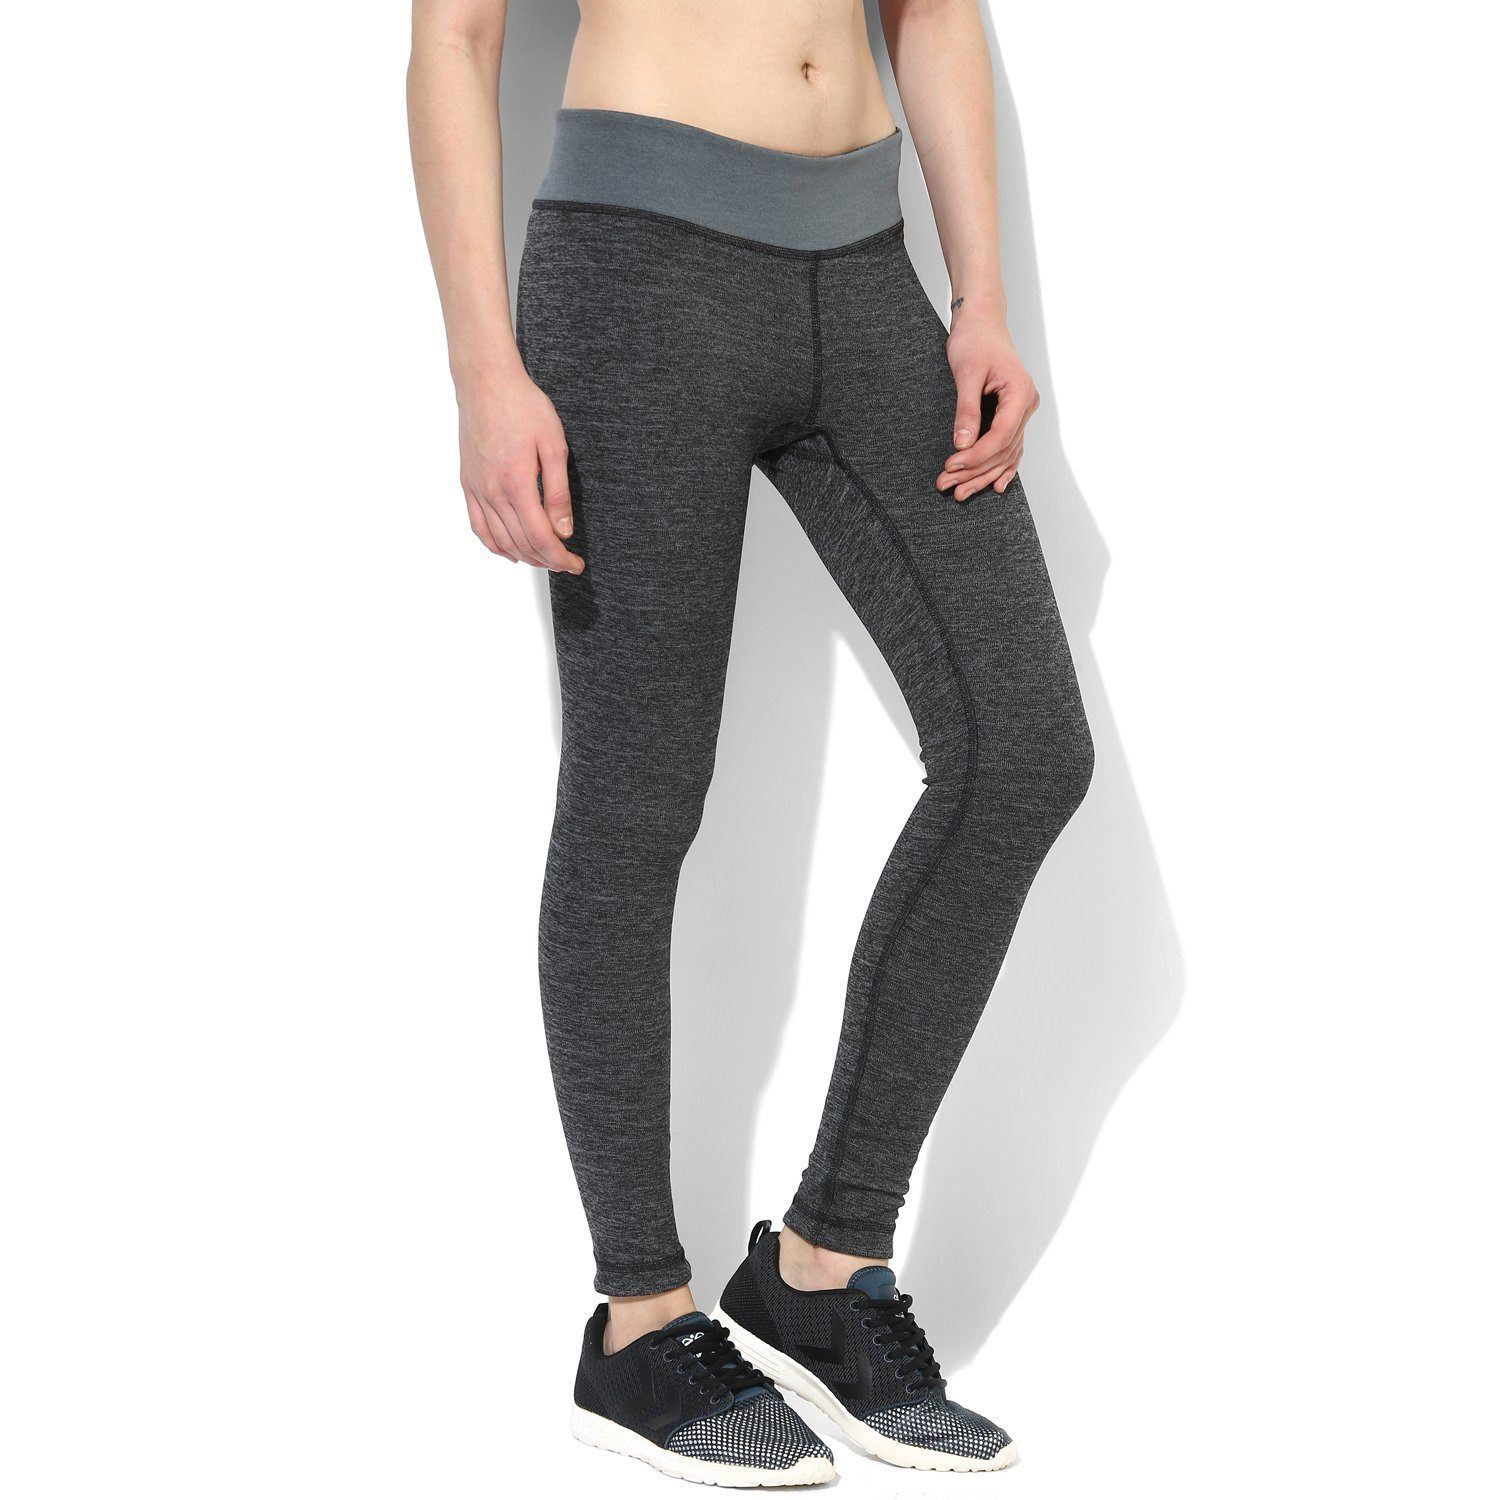 Silvertraq Melange Training Tights